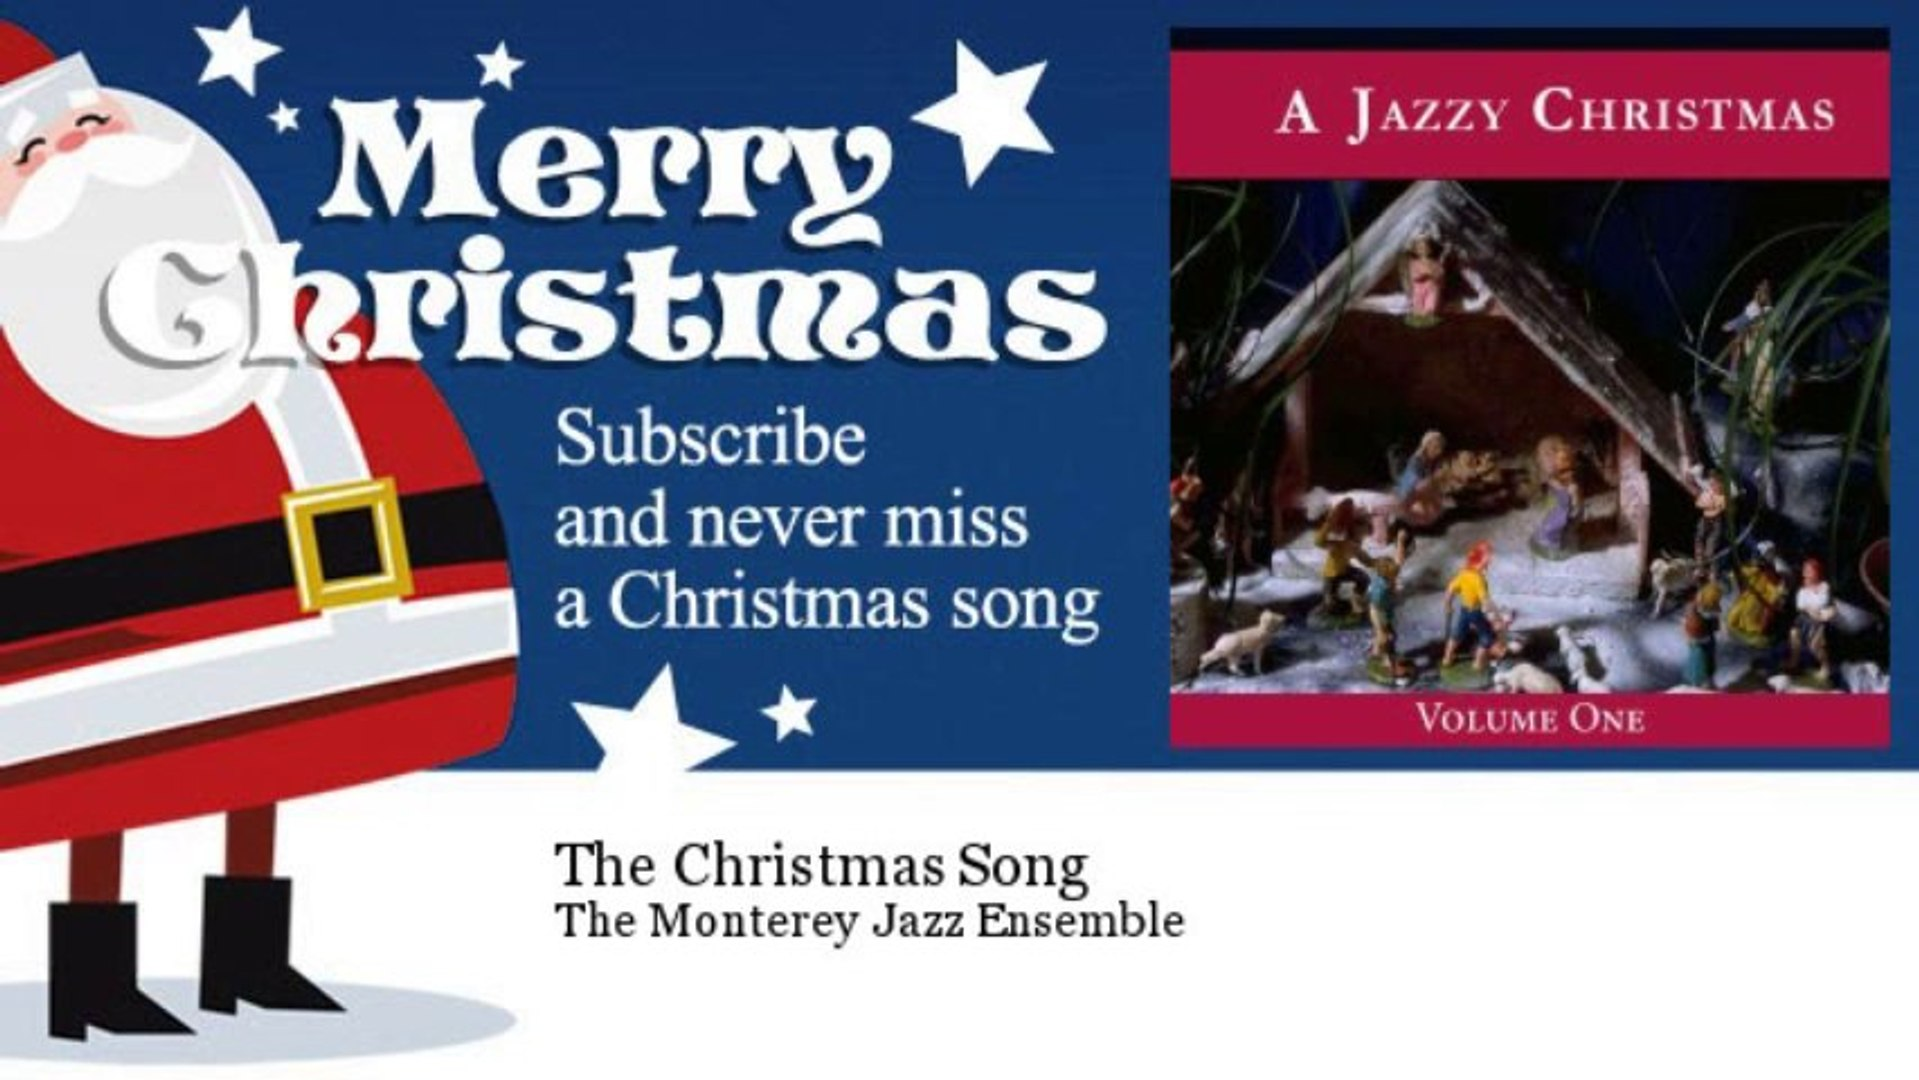 The Monterey Jazz Ensemble - The Christmas Song